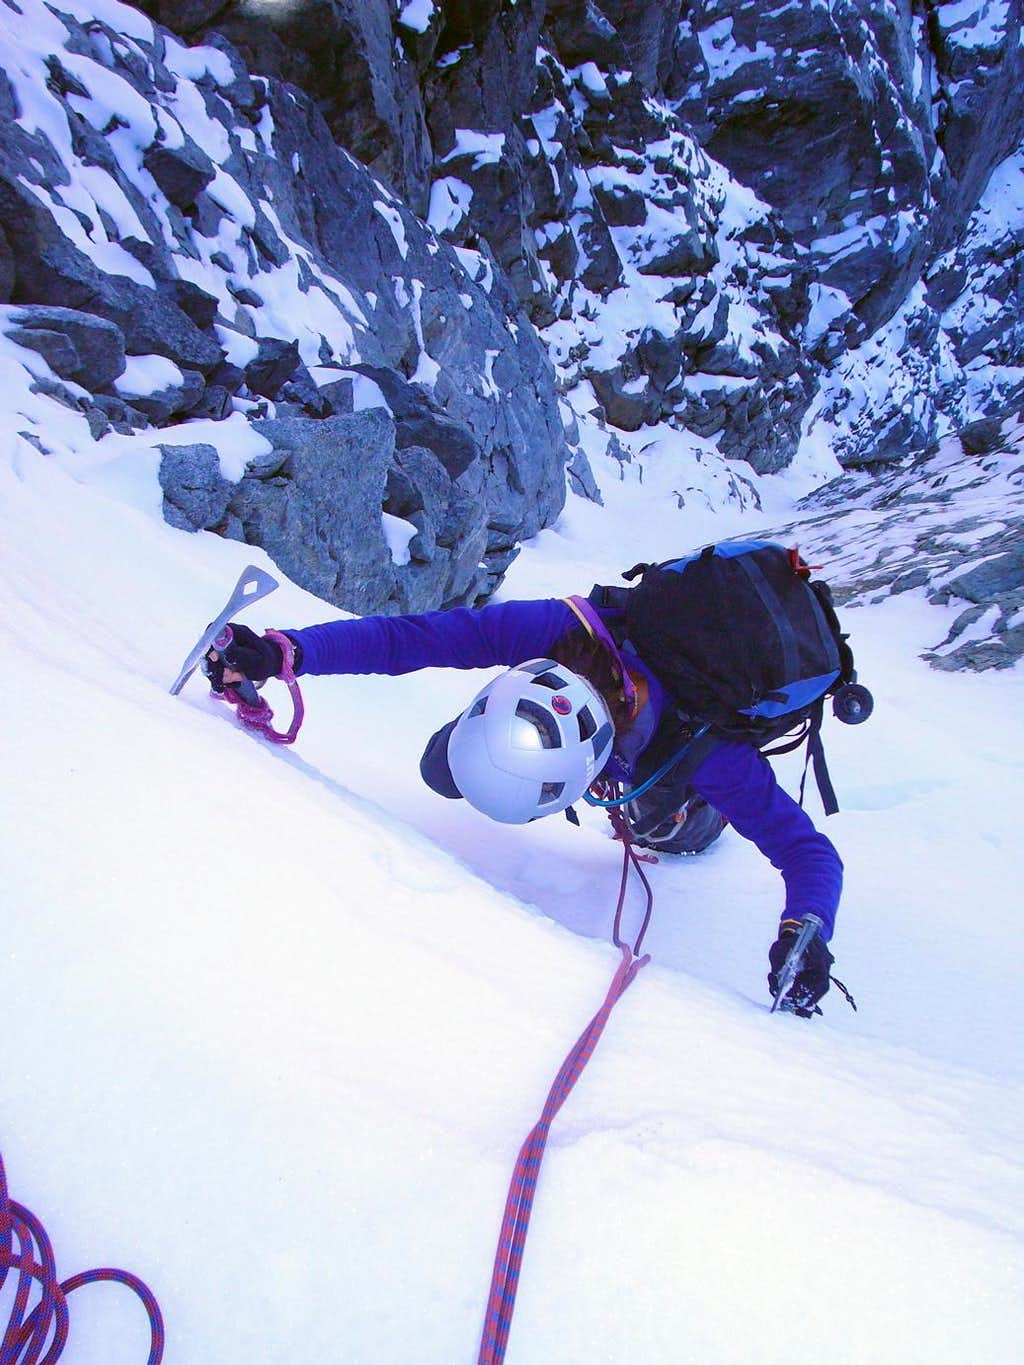 At the top of the Thread of Ice